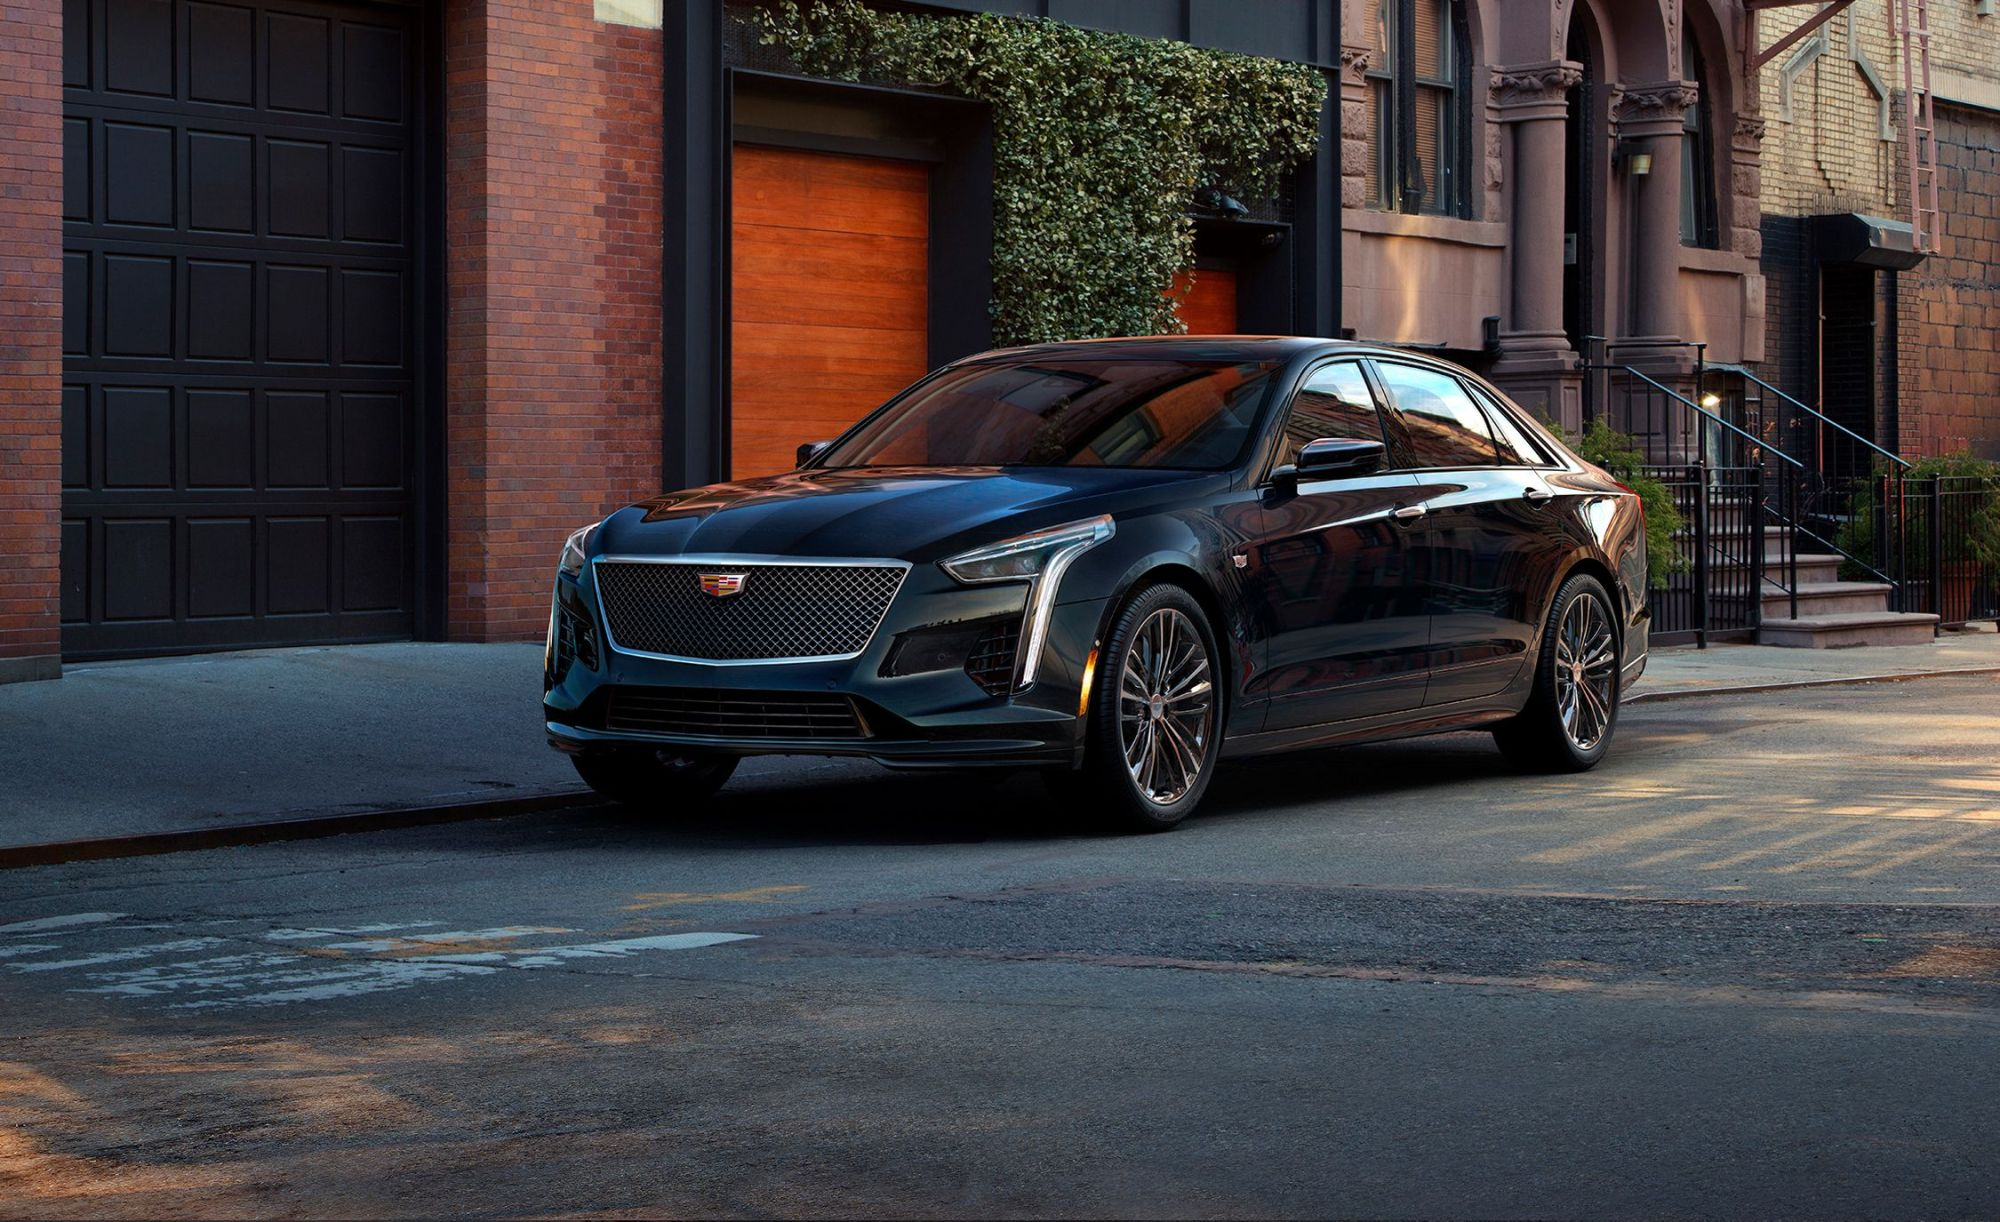 hight resolution of 2019 cadillac ct6 v puts a 550 hp v 8 under the hood for under 90 000